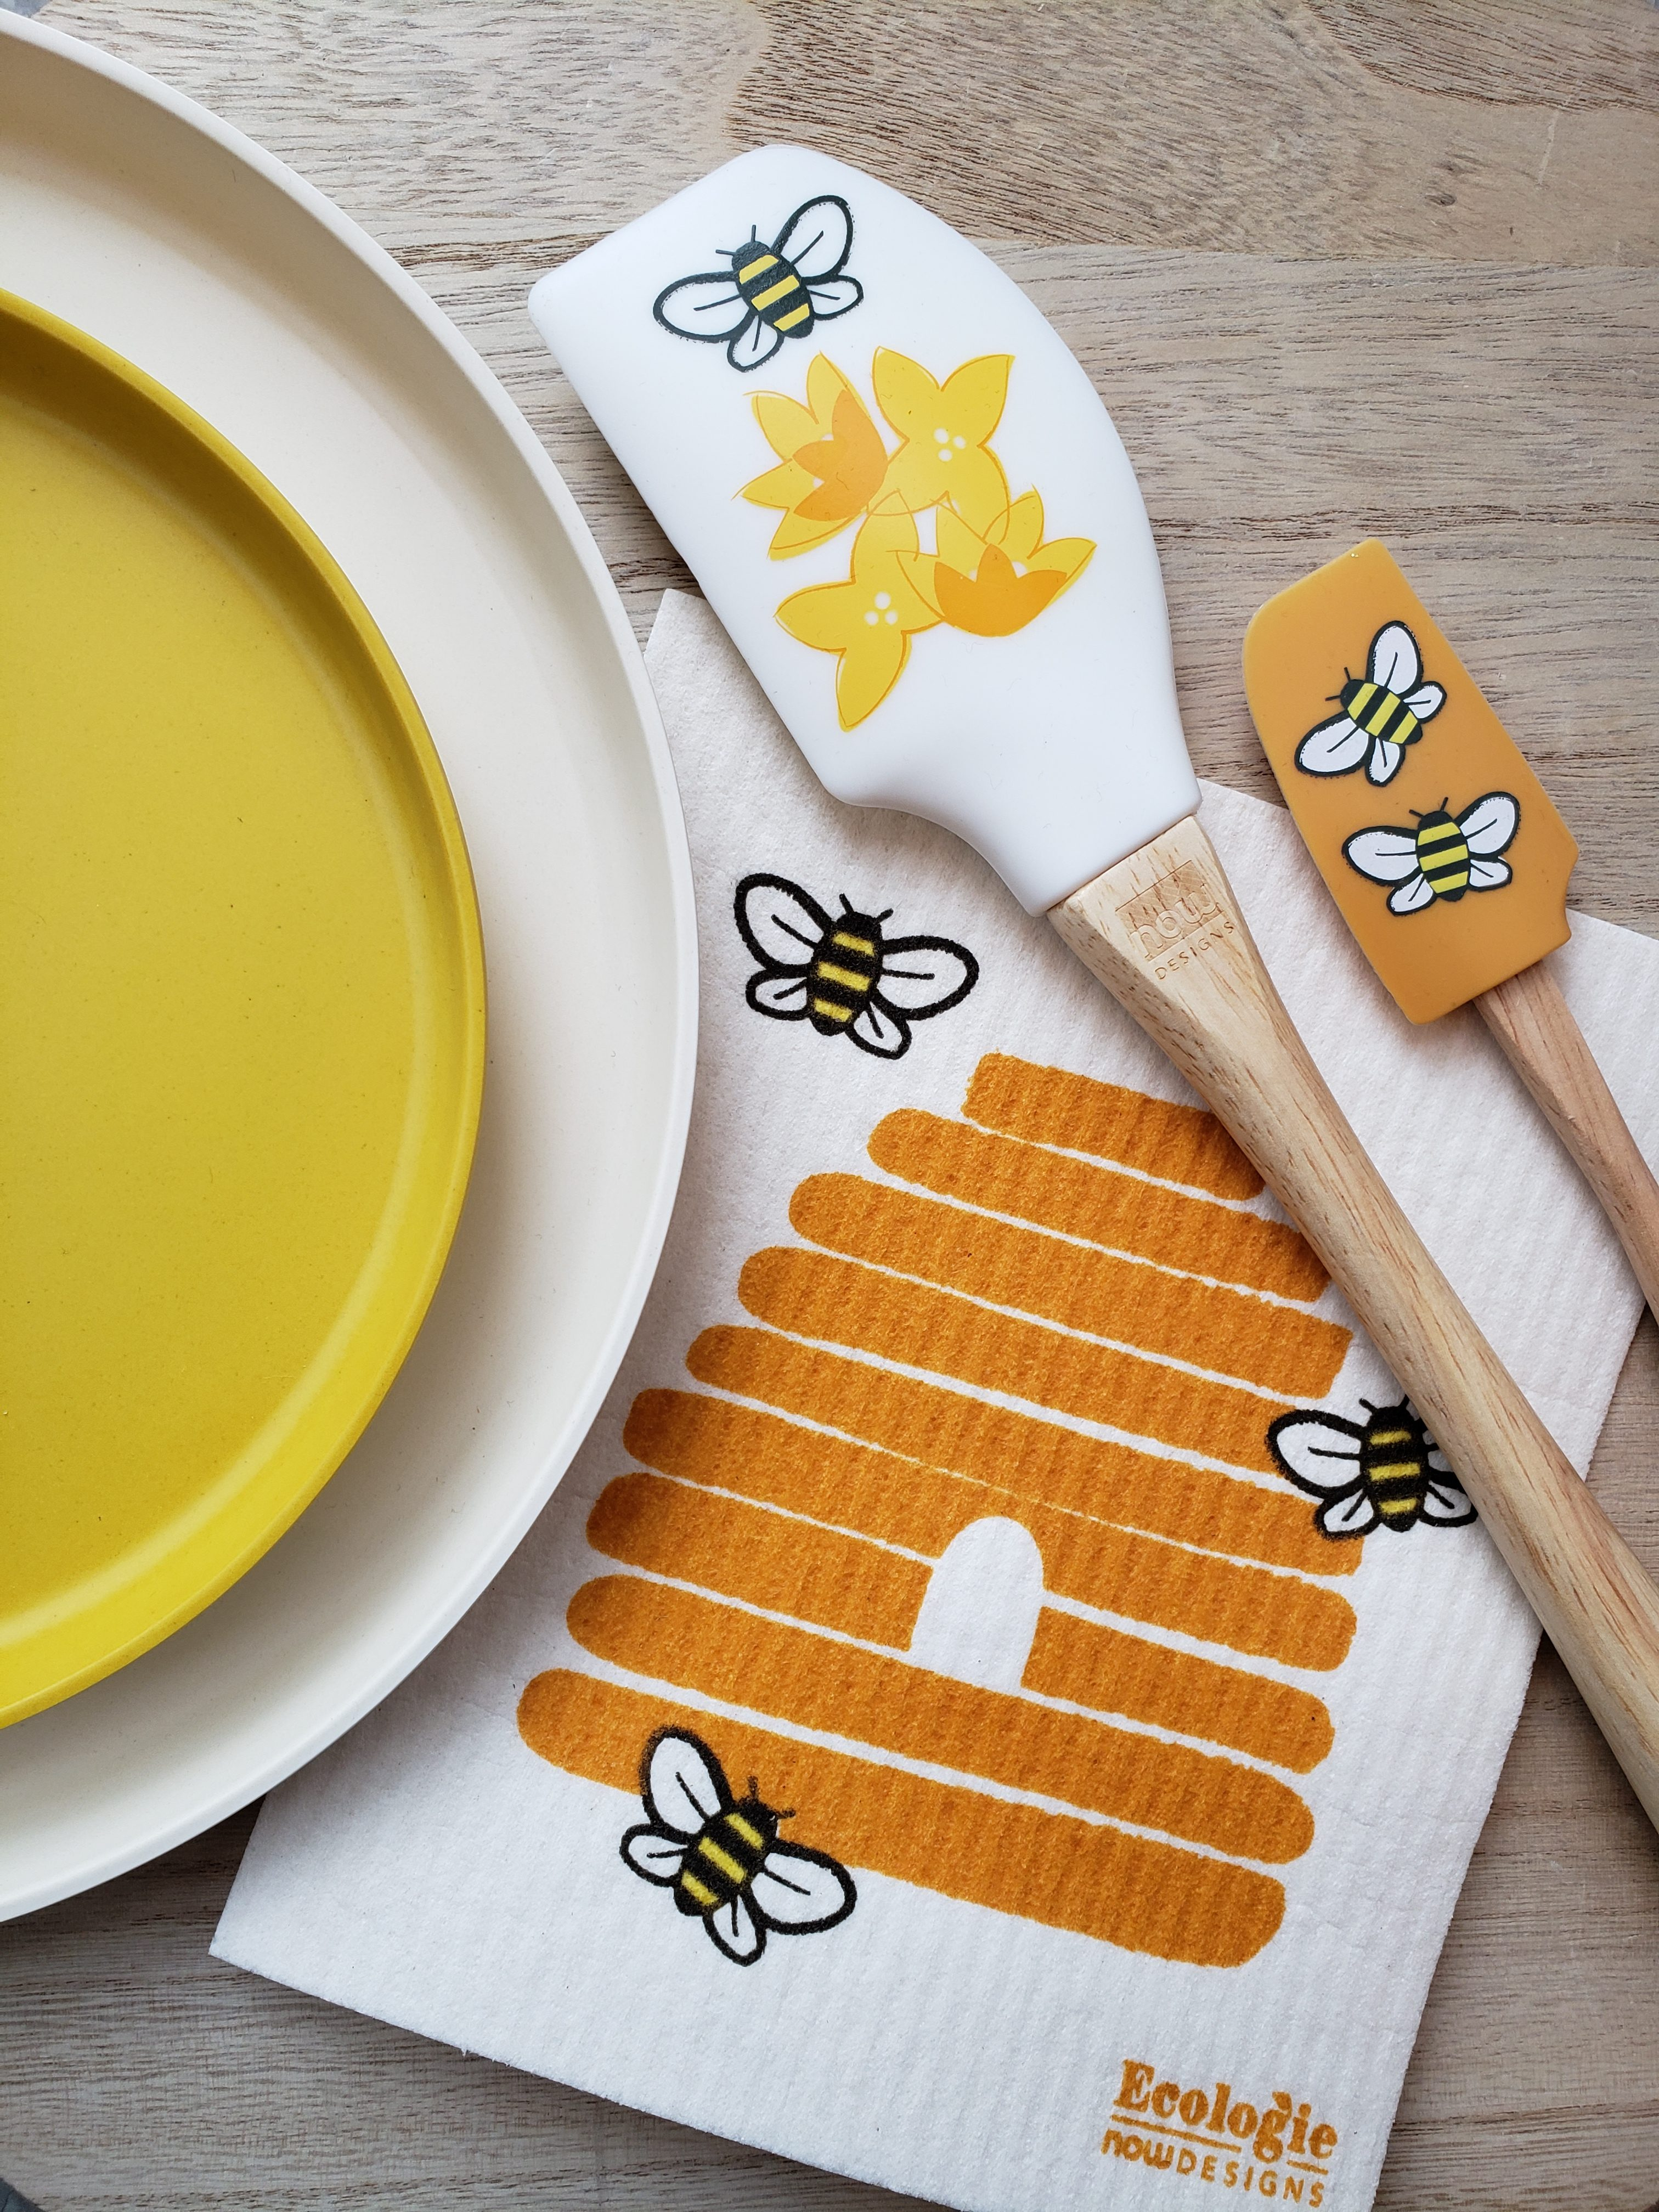 Flat lay of sustainable dish ware products - recycled material plates and Swedish dishcloths